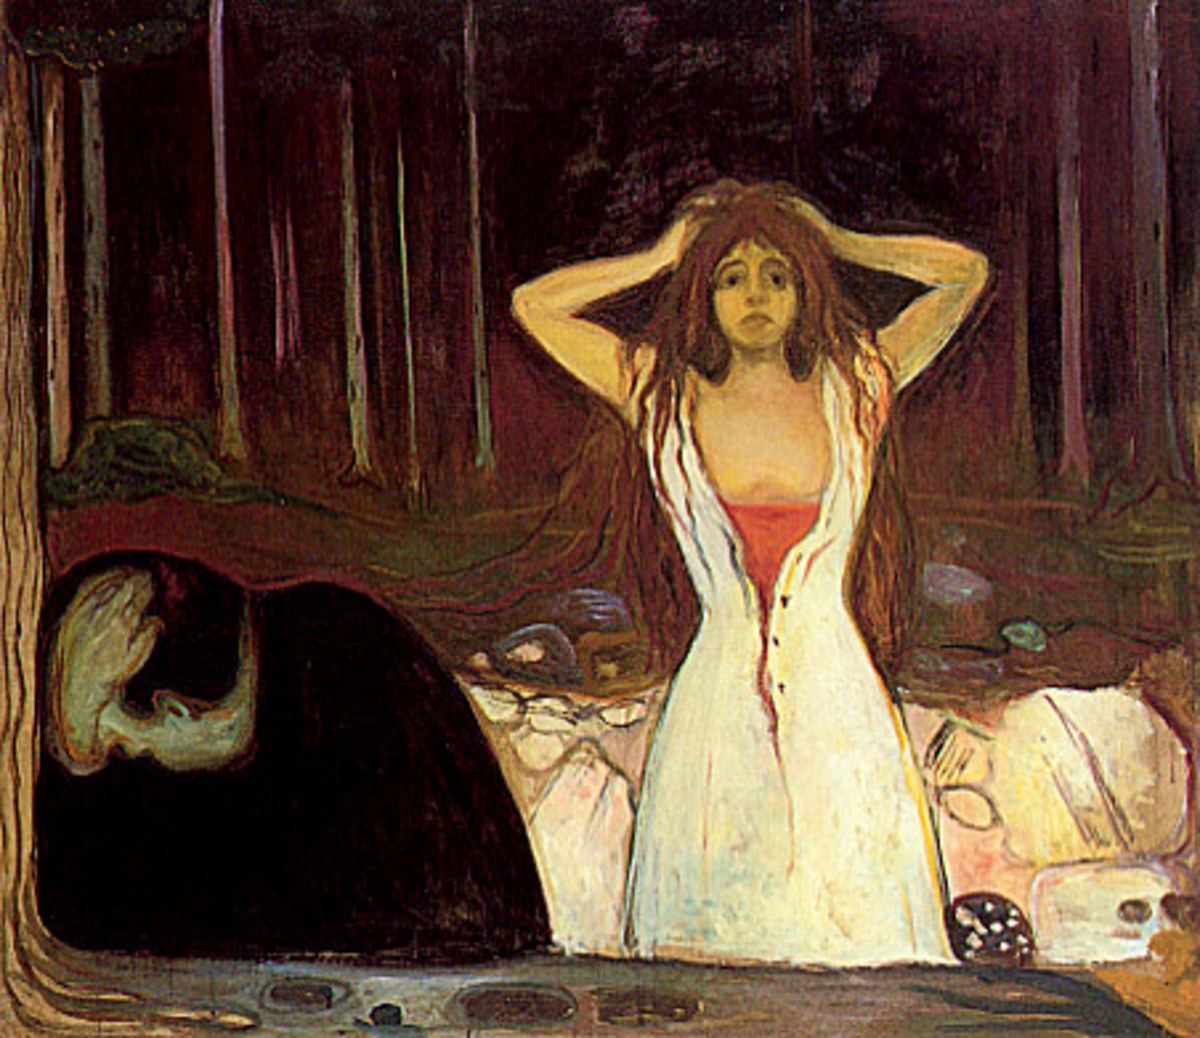 'Ashes' by Edvard Munch